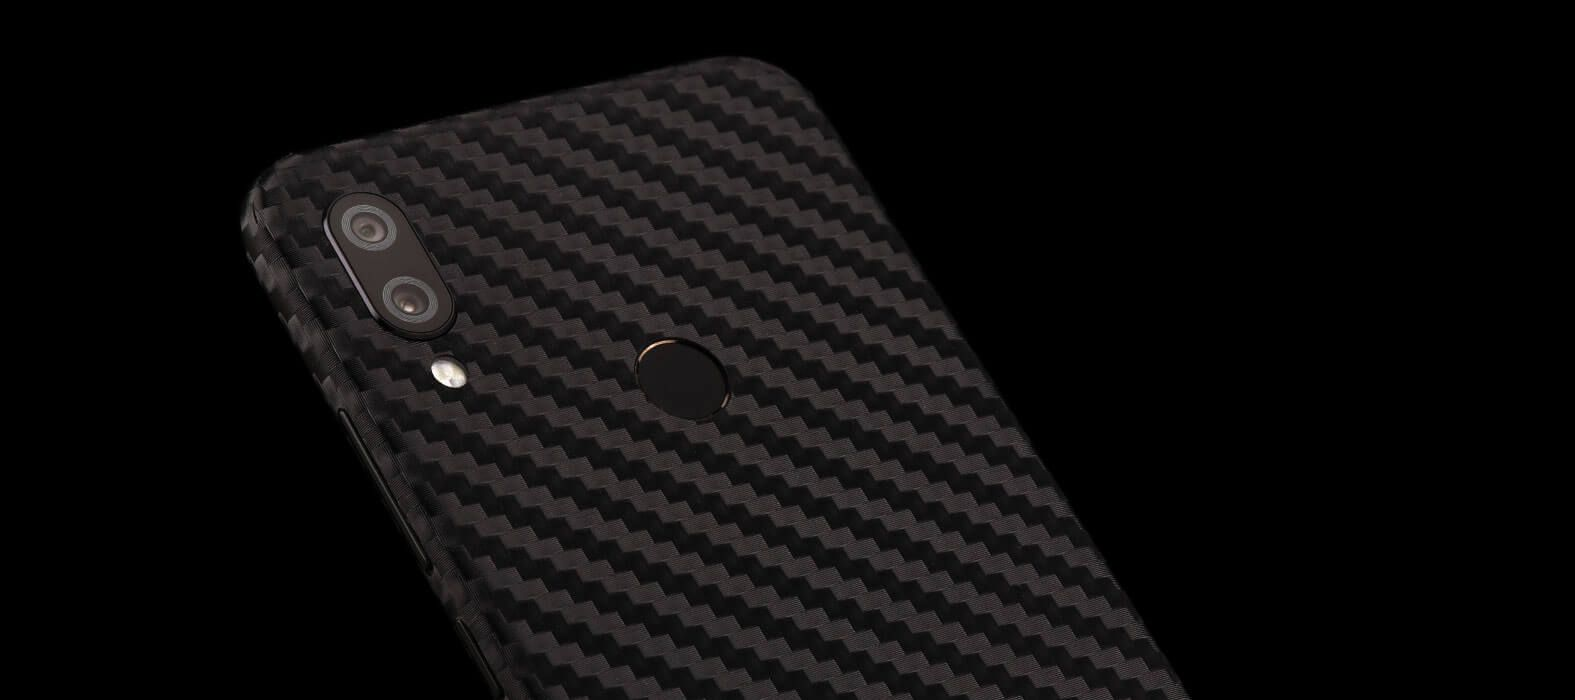 redmi-note-7-black-carbon-fiber_skins